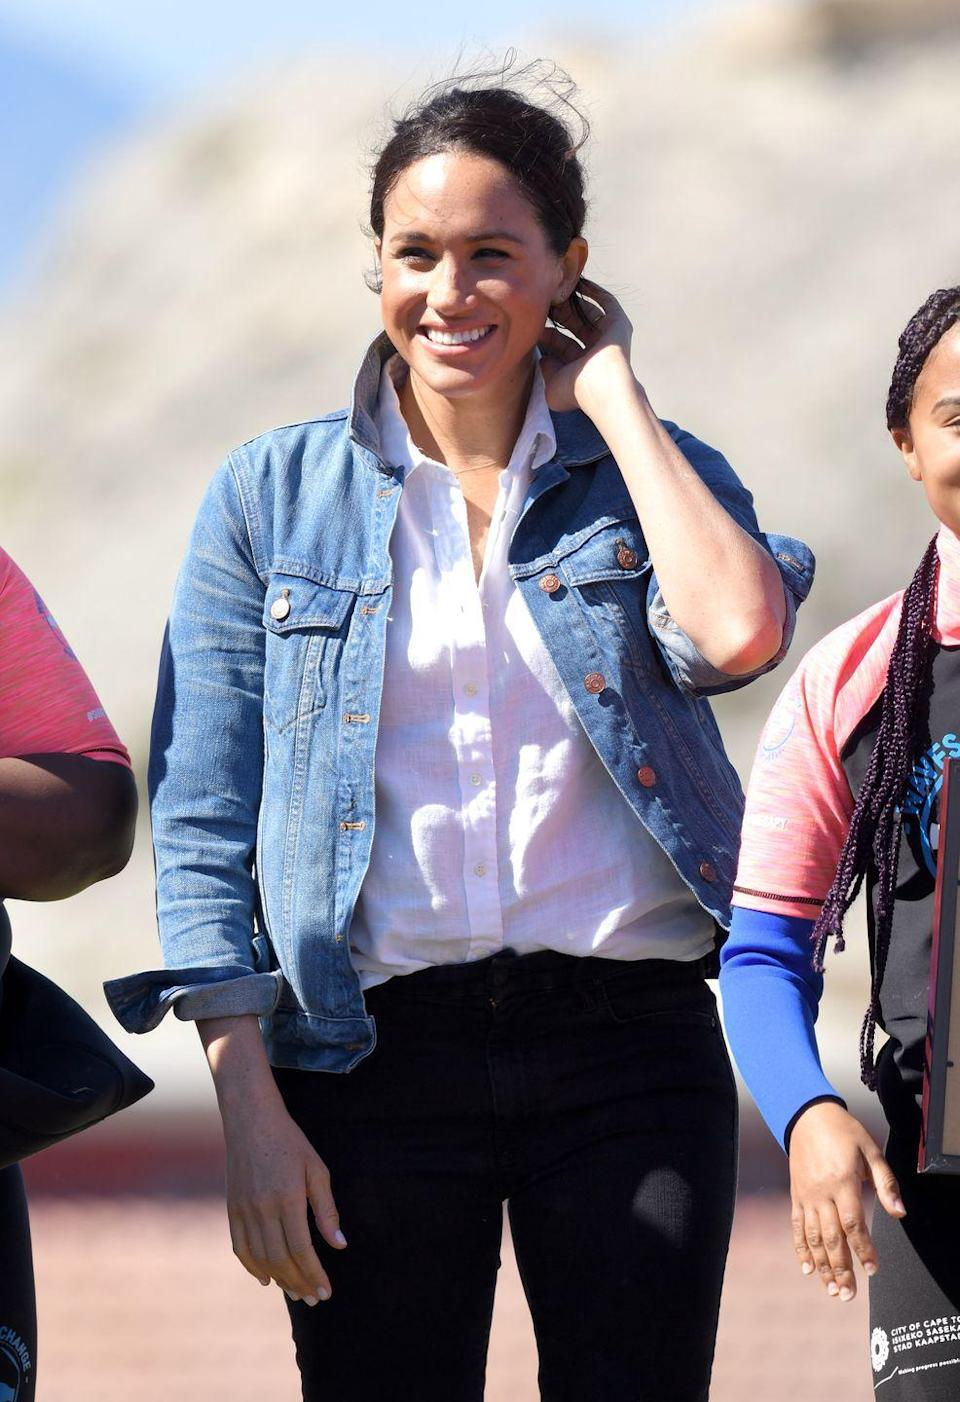 """<p>The Duchess of Sussex went for a classic option while visiting Monwabisi Beach in South Africa. She sported a simple white linen J. Crew shirt for the outing. </p><p><a class=""""link rapid-noclick-resp"""" href=""""https://go.redirectingat.com?id=74968X1596630&url=https%3A%2F%2Fwww.jcrew.com%2Fp%2Fwomens_category%2Fshirts_tops%2Frelaxedfit-baird-mcnutt-irish-linen-shirt%2FAW700%3Fcolor_name%3Dwhite&sref=https%3A%2F%2Fwww.elle.com%2Ffashion%2Fshopping%2Fg36477134%2Fmeghan-markle-white-button-down-shirts%2F"""" rel=""""nofollow noopener"""" target=""""_blank"""" data-ylk=""""slk:Shop Now"""">Shop Now</a></p>"""